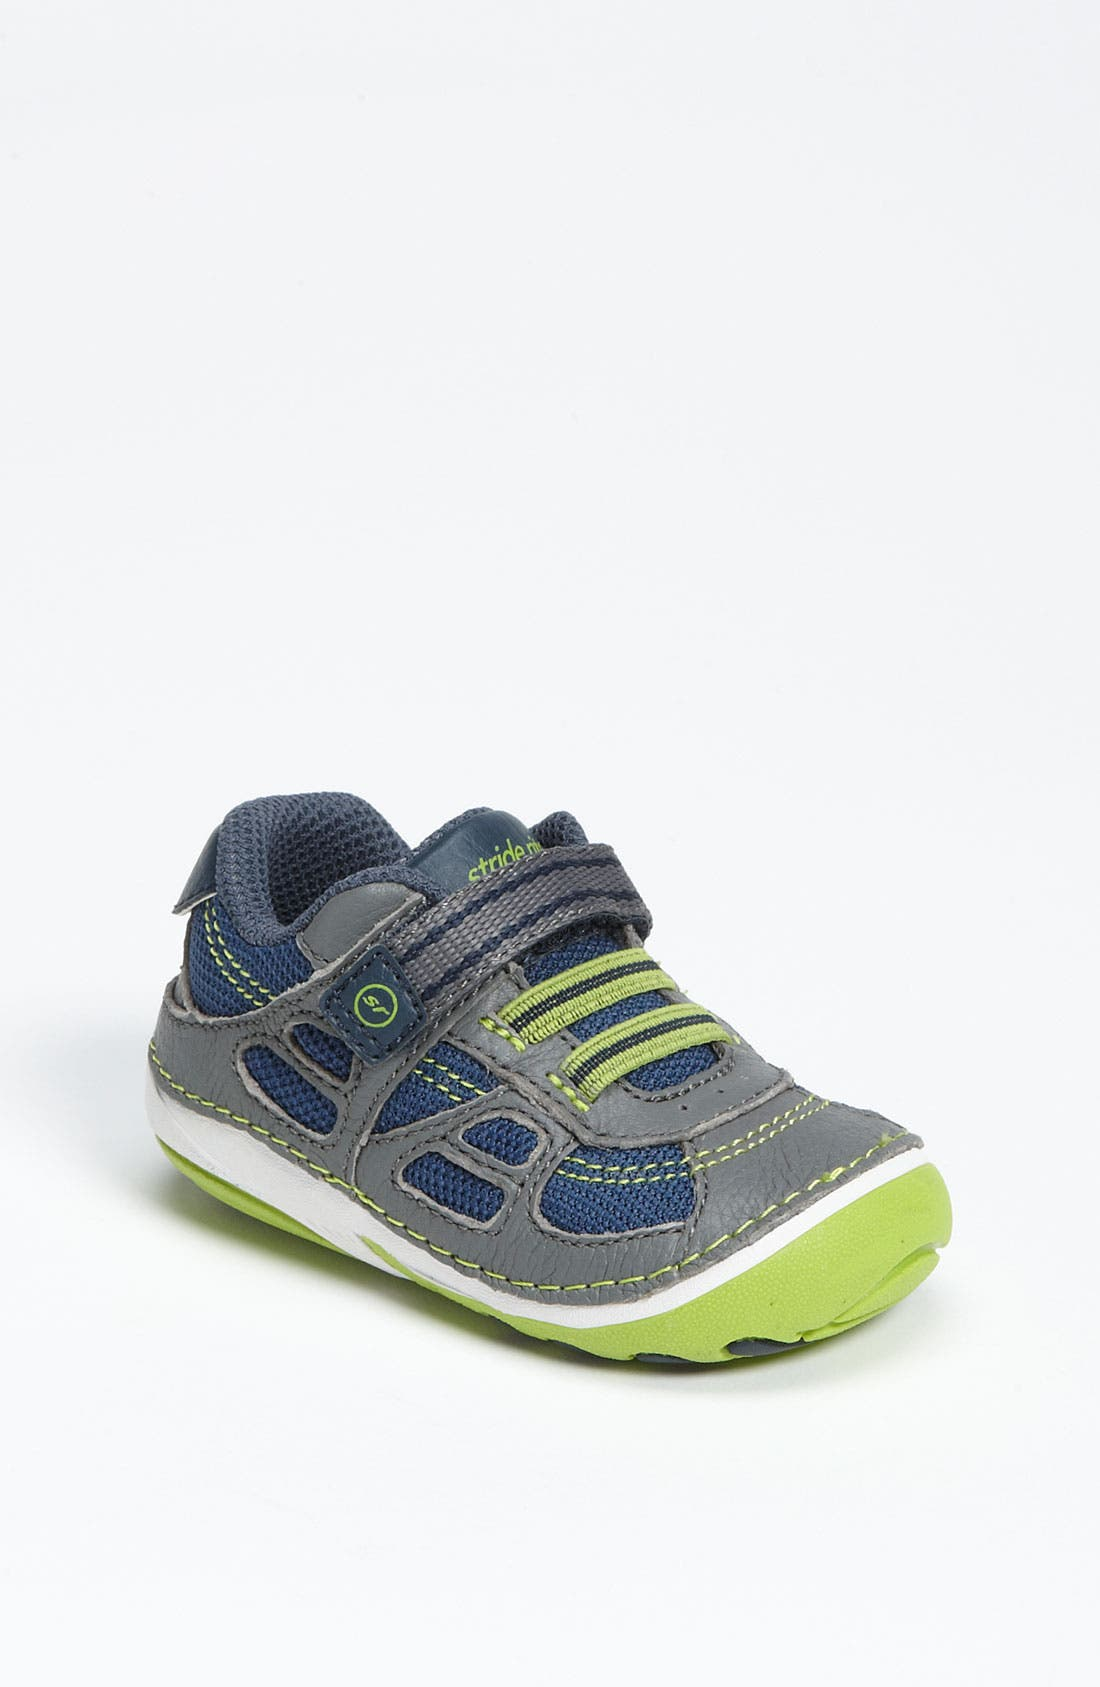 Main Image - Stride Rite 'Conner' Sneaker (Baby & Walker)